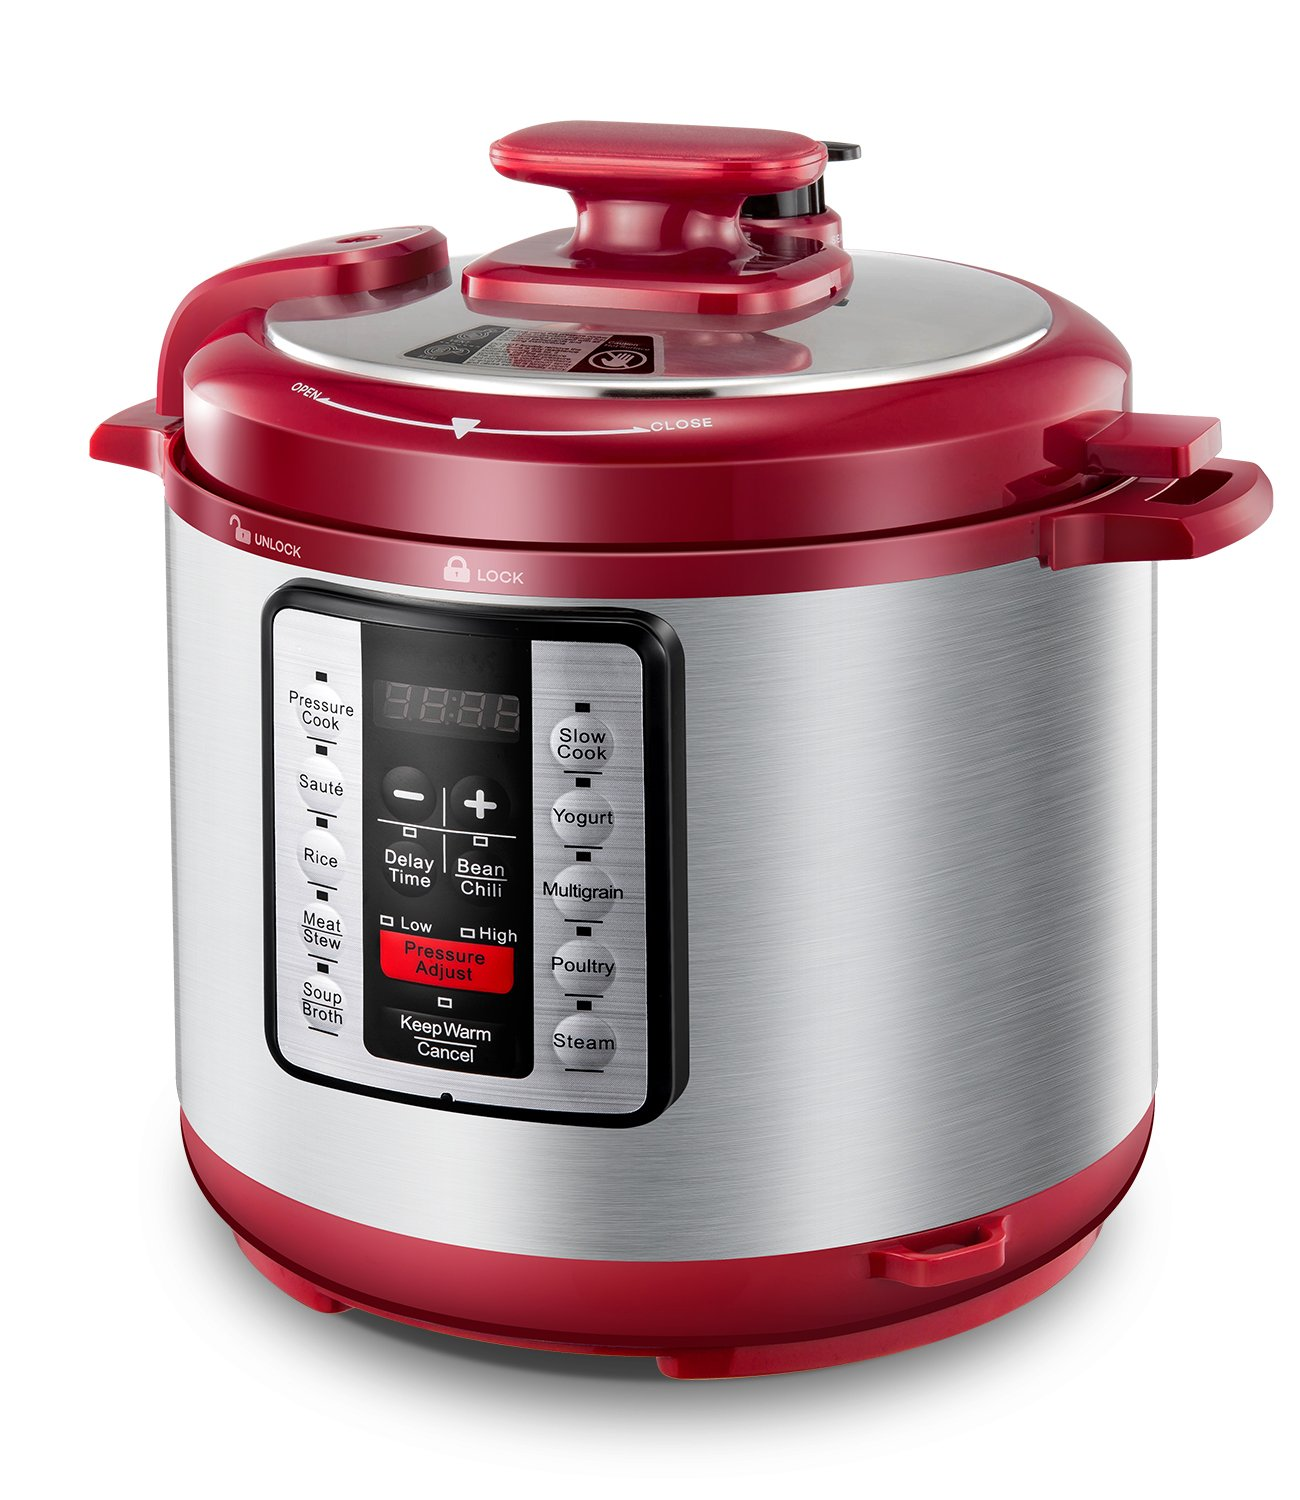 icookpot 9 in 1 multi use pressure cooker